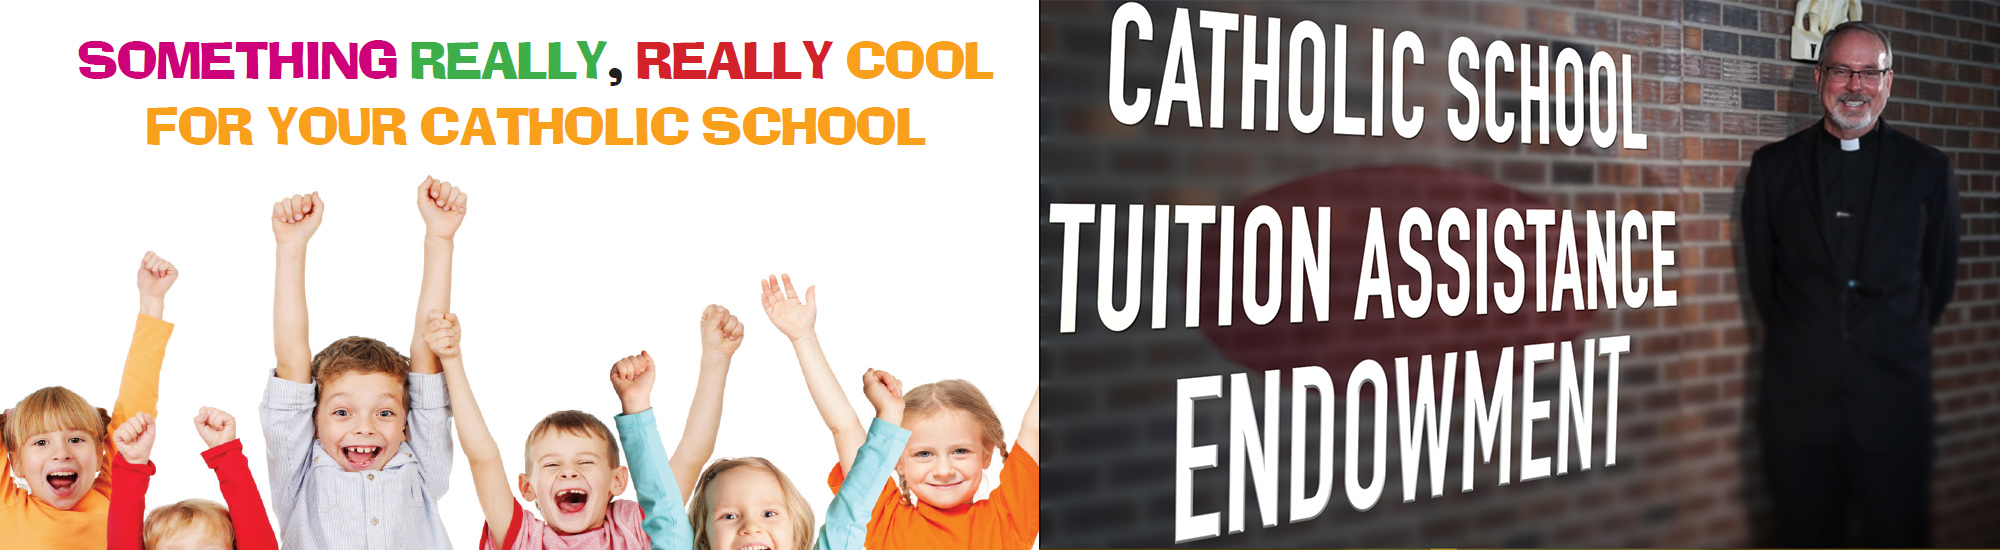 Catholic School Tuition Assistance Endowment